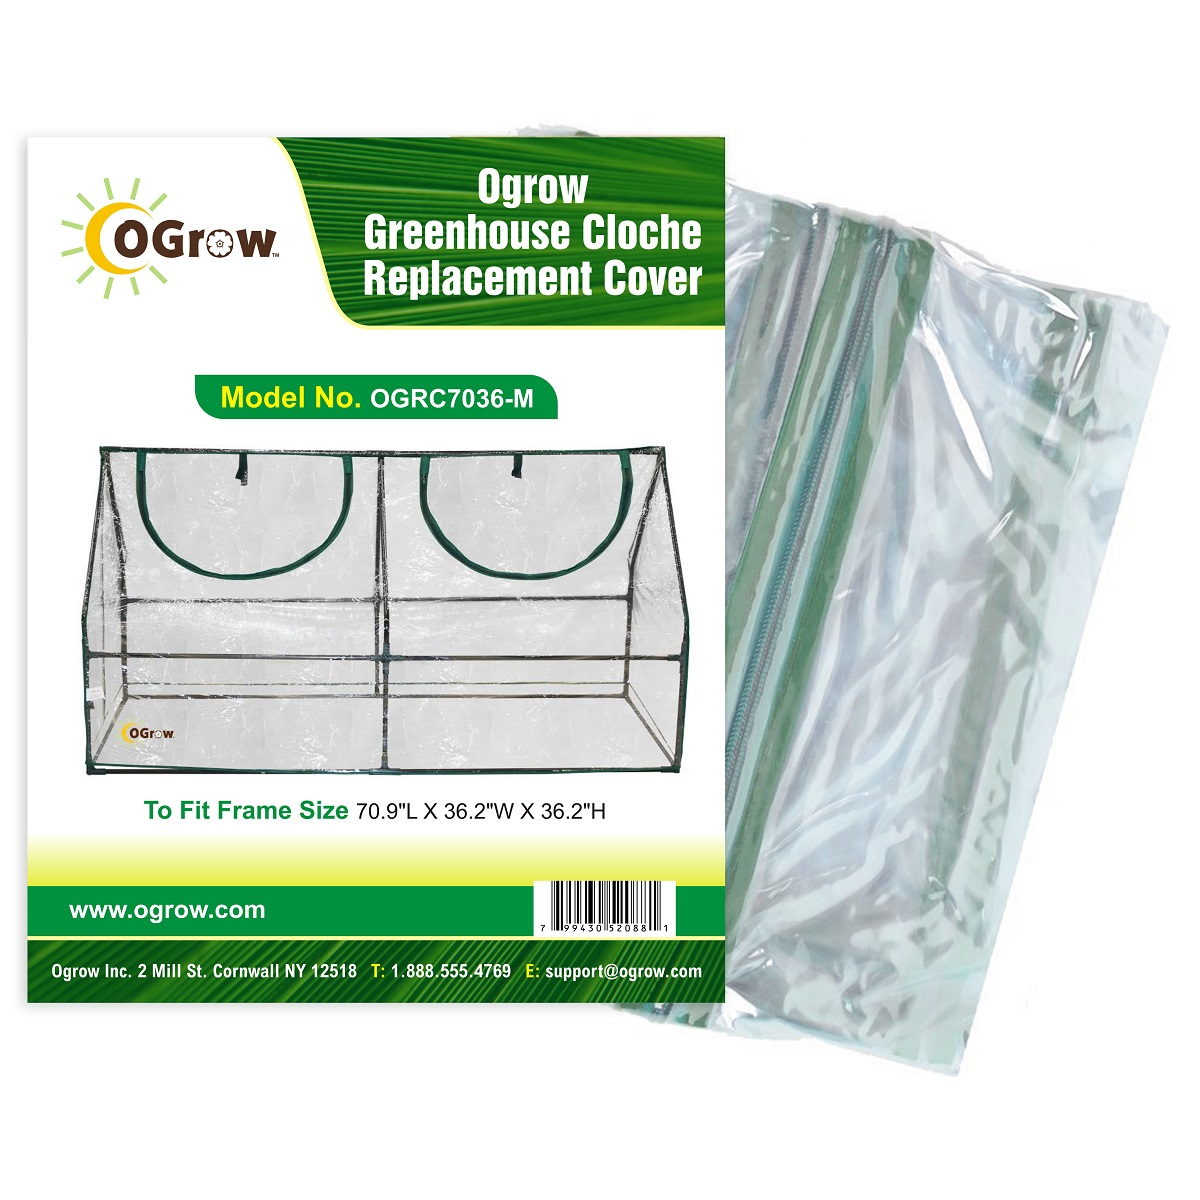 "Greenhouse Cloche Replacement Cover - To Fit Frame Size  70.9""L X 36.2""W X 36.2""H"